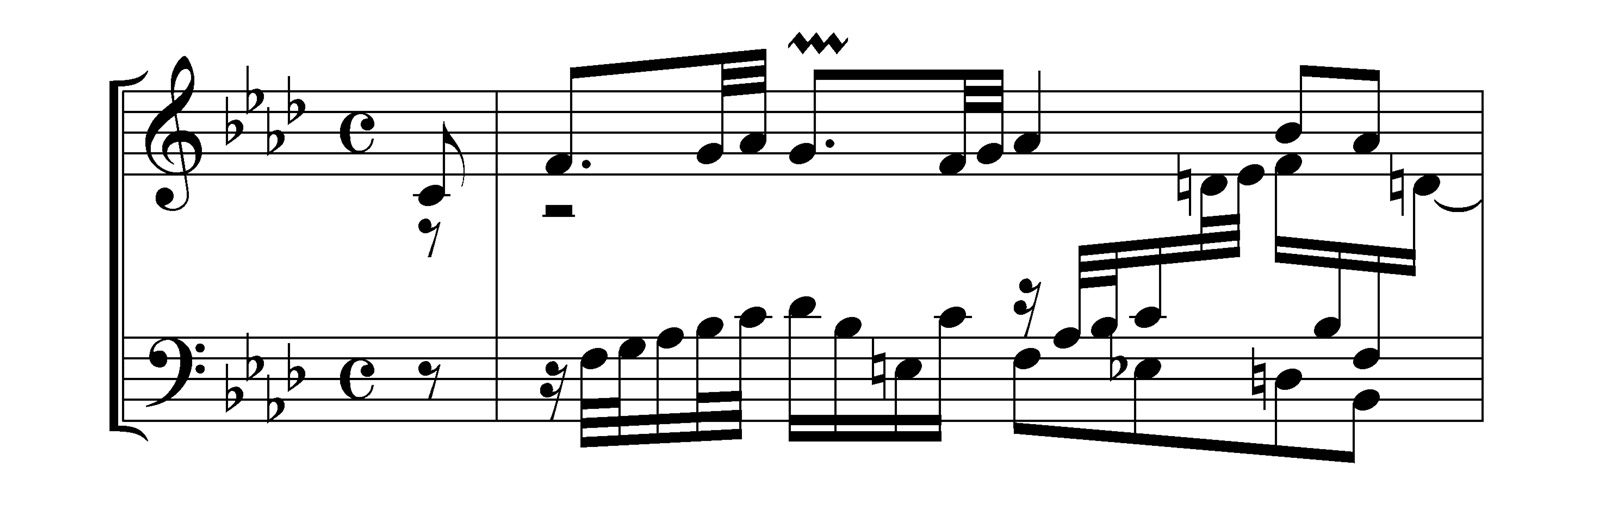 Example of modern engraving using Finale and Maestro (Bach BWV 658) - Noteheads have a generous size, accidentals are well defined, beams are balanced and do not cross staff lines.